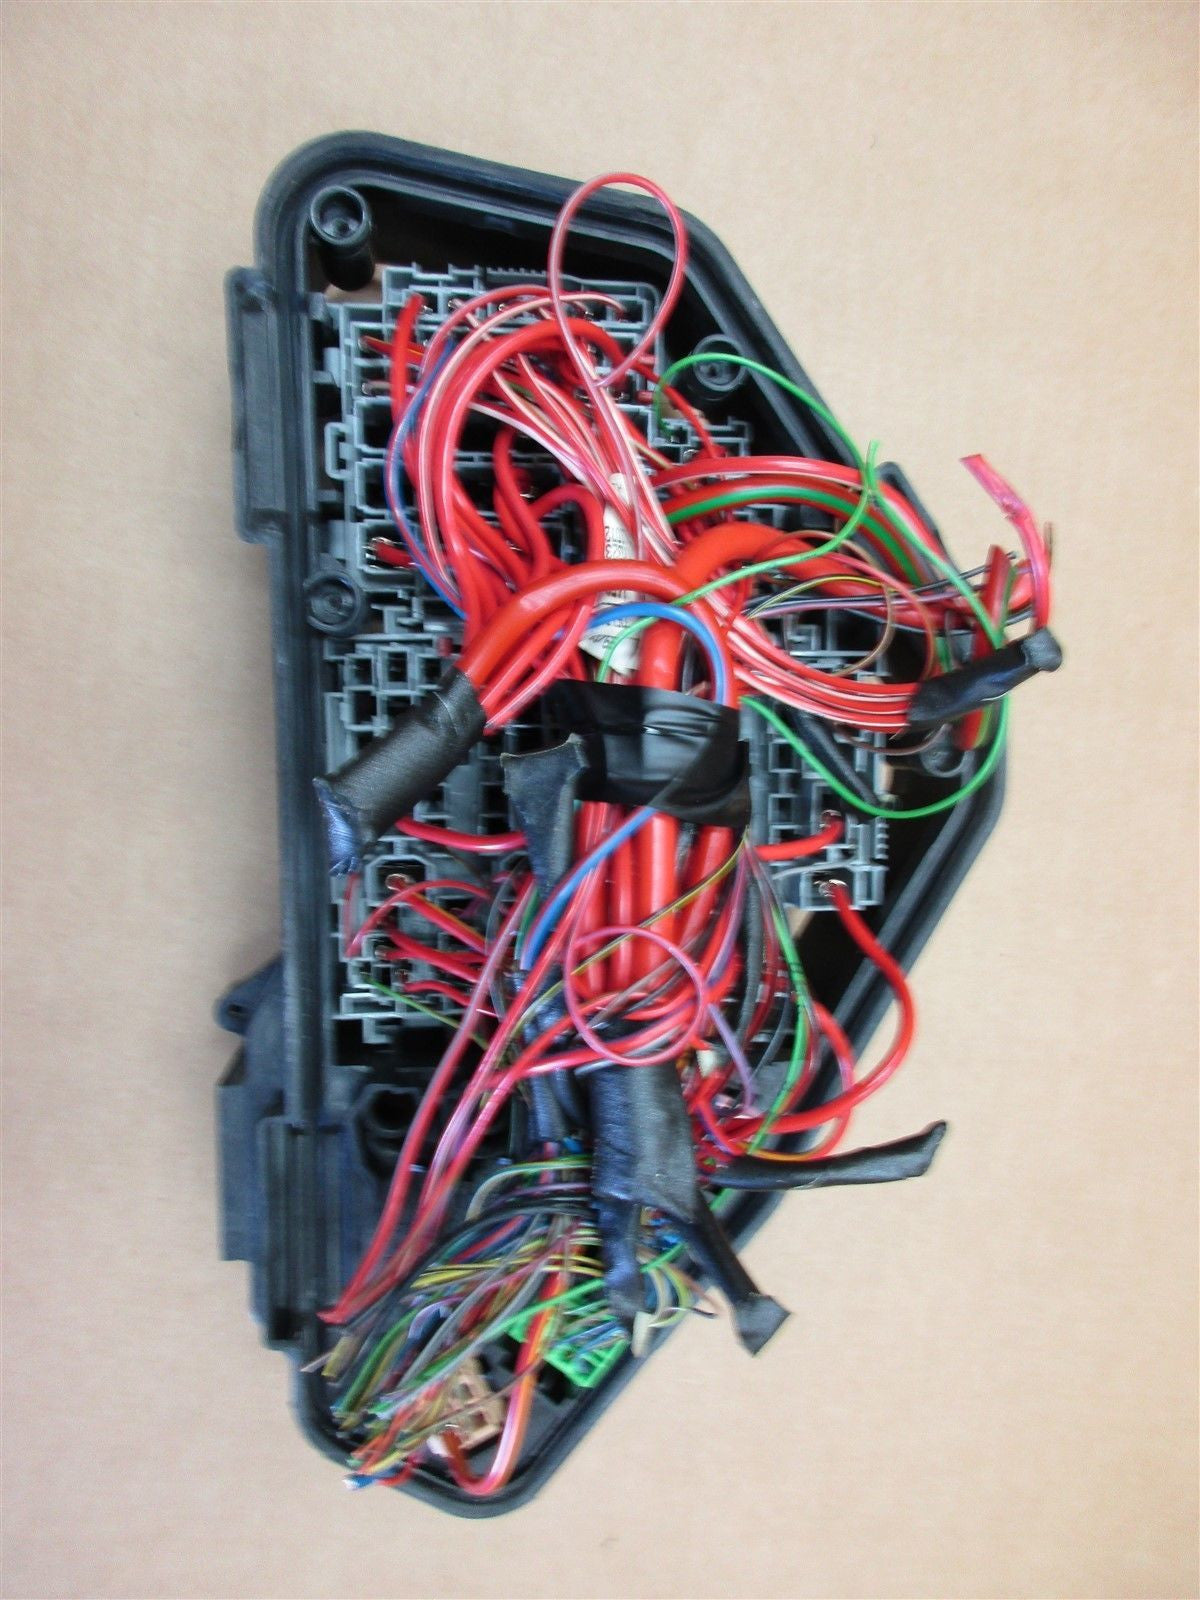 57_ed5eed81 566a 409b a3e2 76083b96c6fe?v=1485406157 04 cayenne turbo awd porsche 955 fuse box relay 7l0941828 04 cayenne fuse box at bakdesigns.co